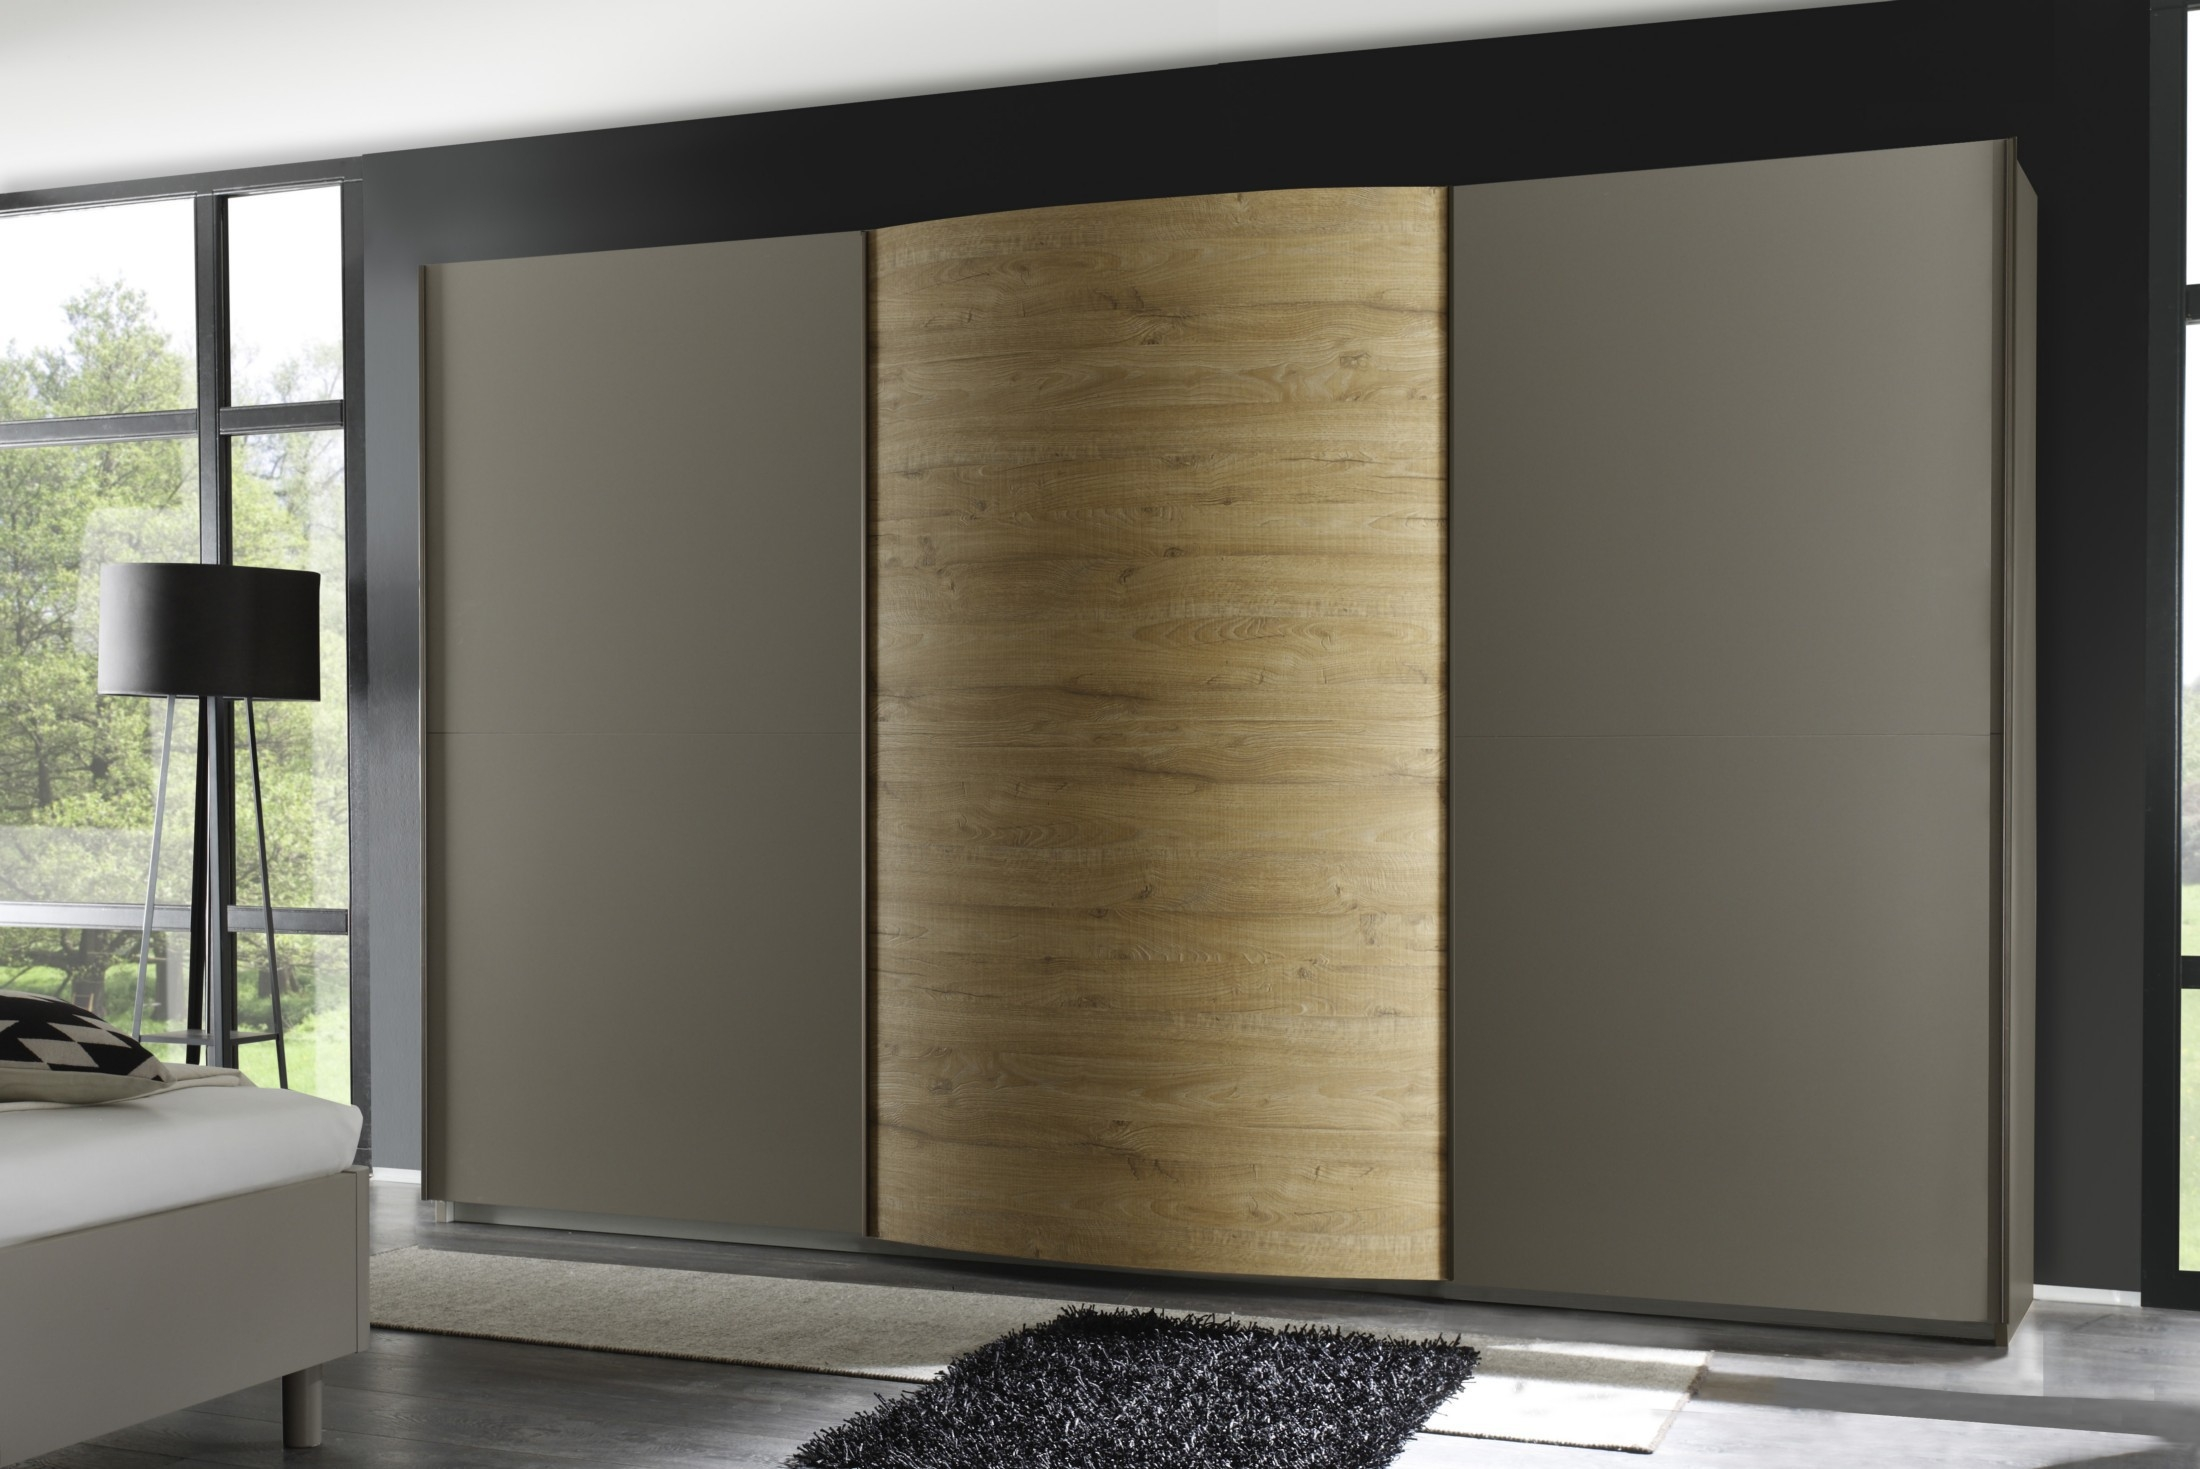 Tambura Curved Sliding 3 Doors Wardrobe Beige Miele Buy Online Inside Curved Wardrobe Doors (Image 8 of 15)